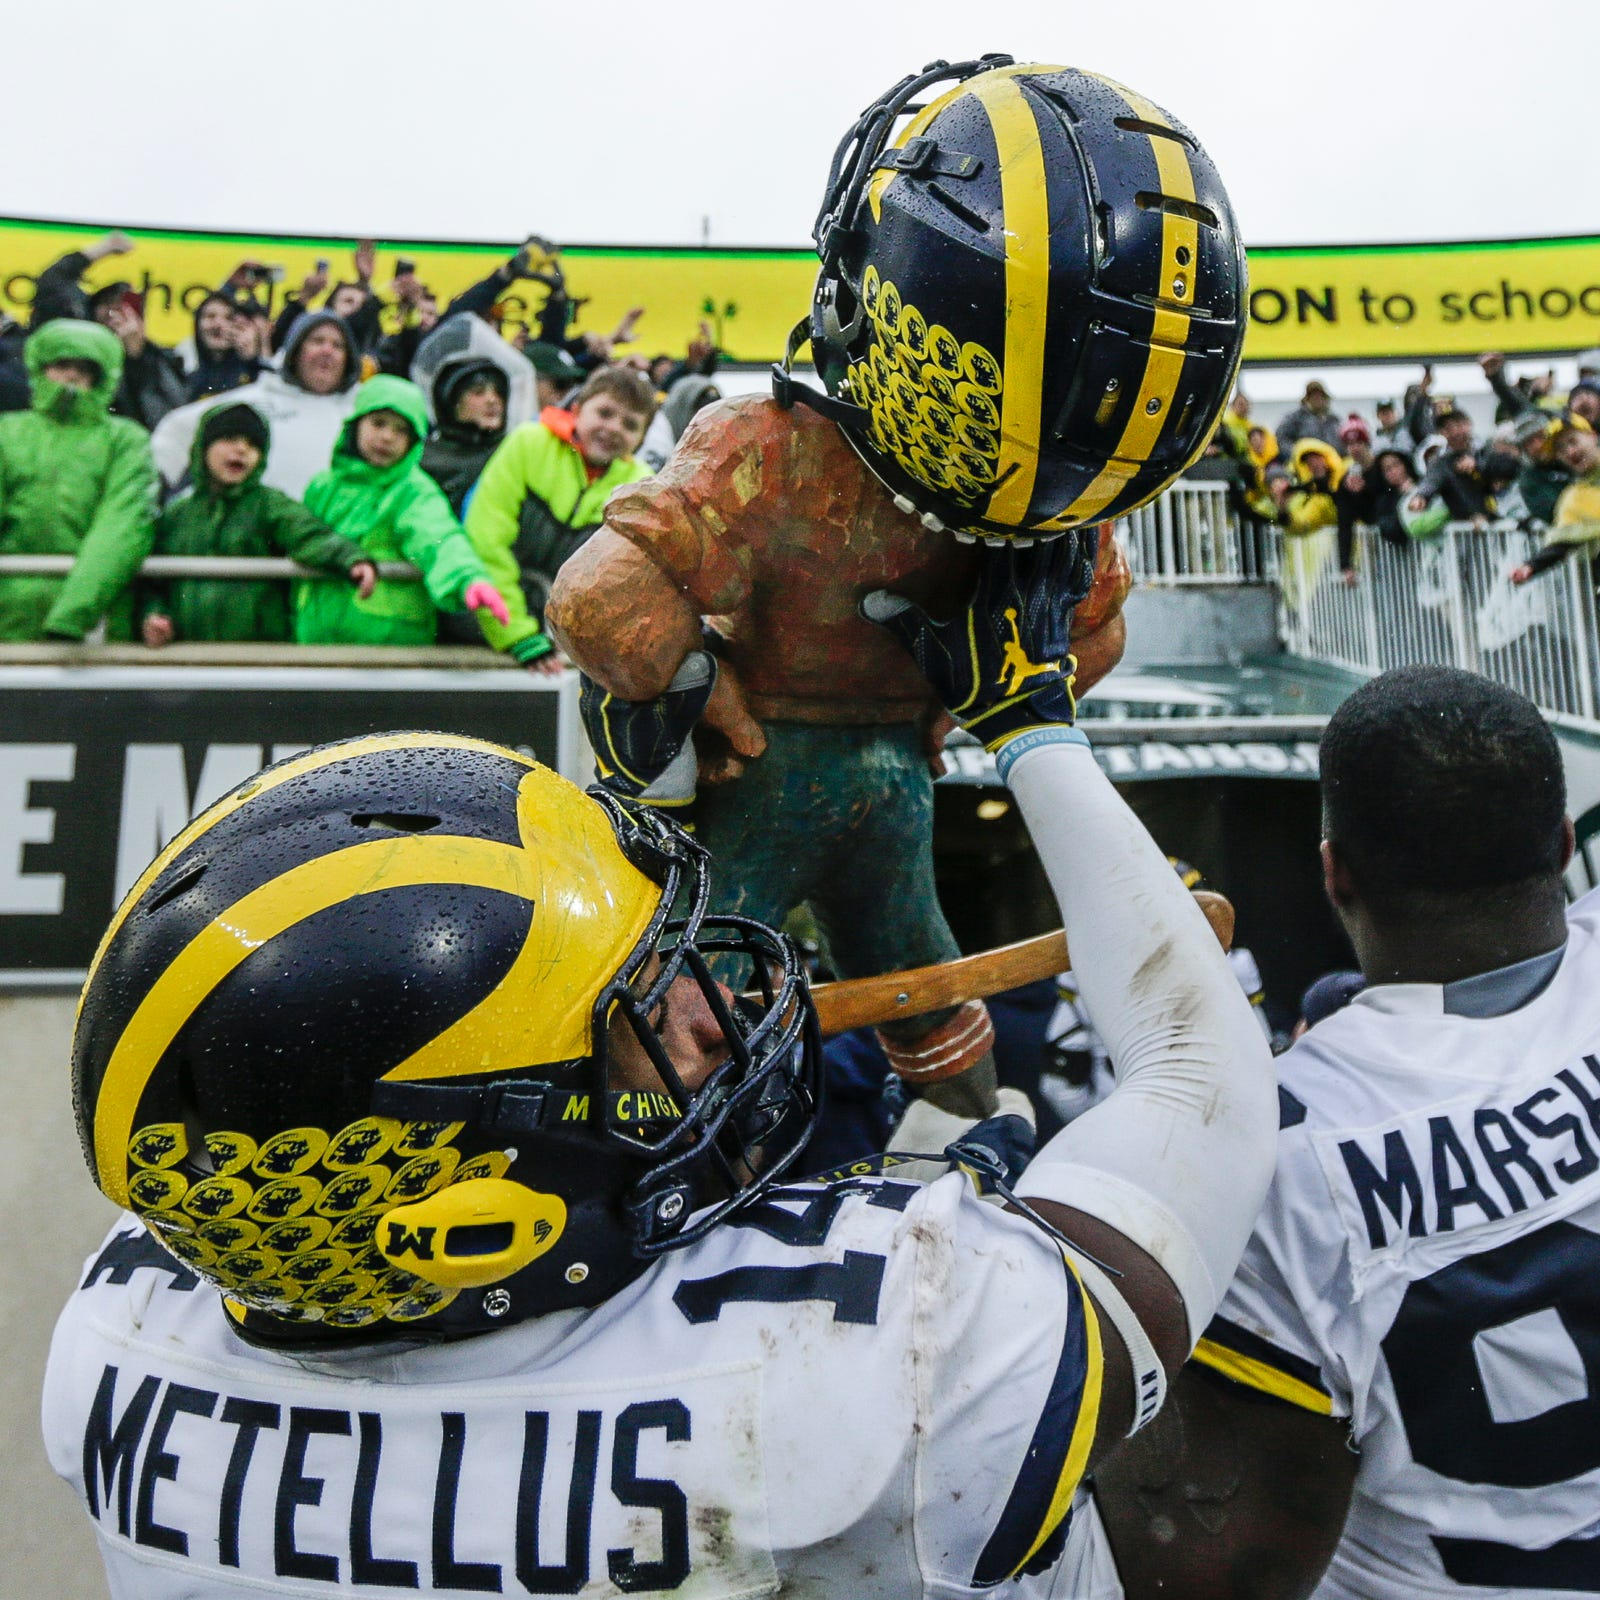 Michigan football trash talks its way back into rivalry with MSU. Finally.